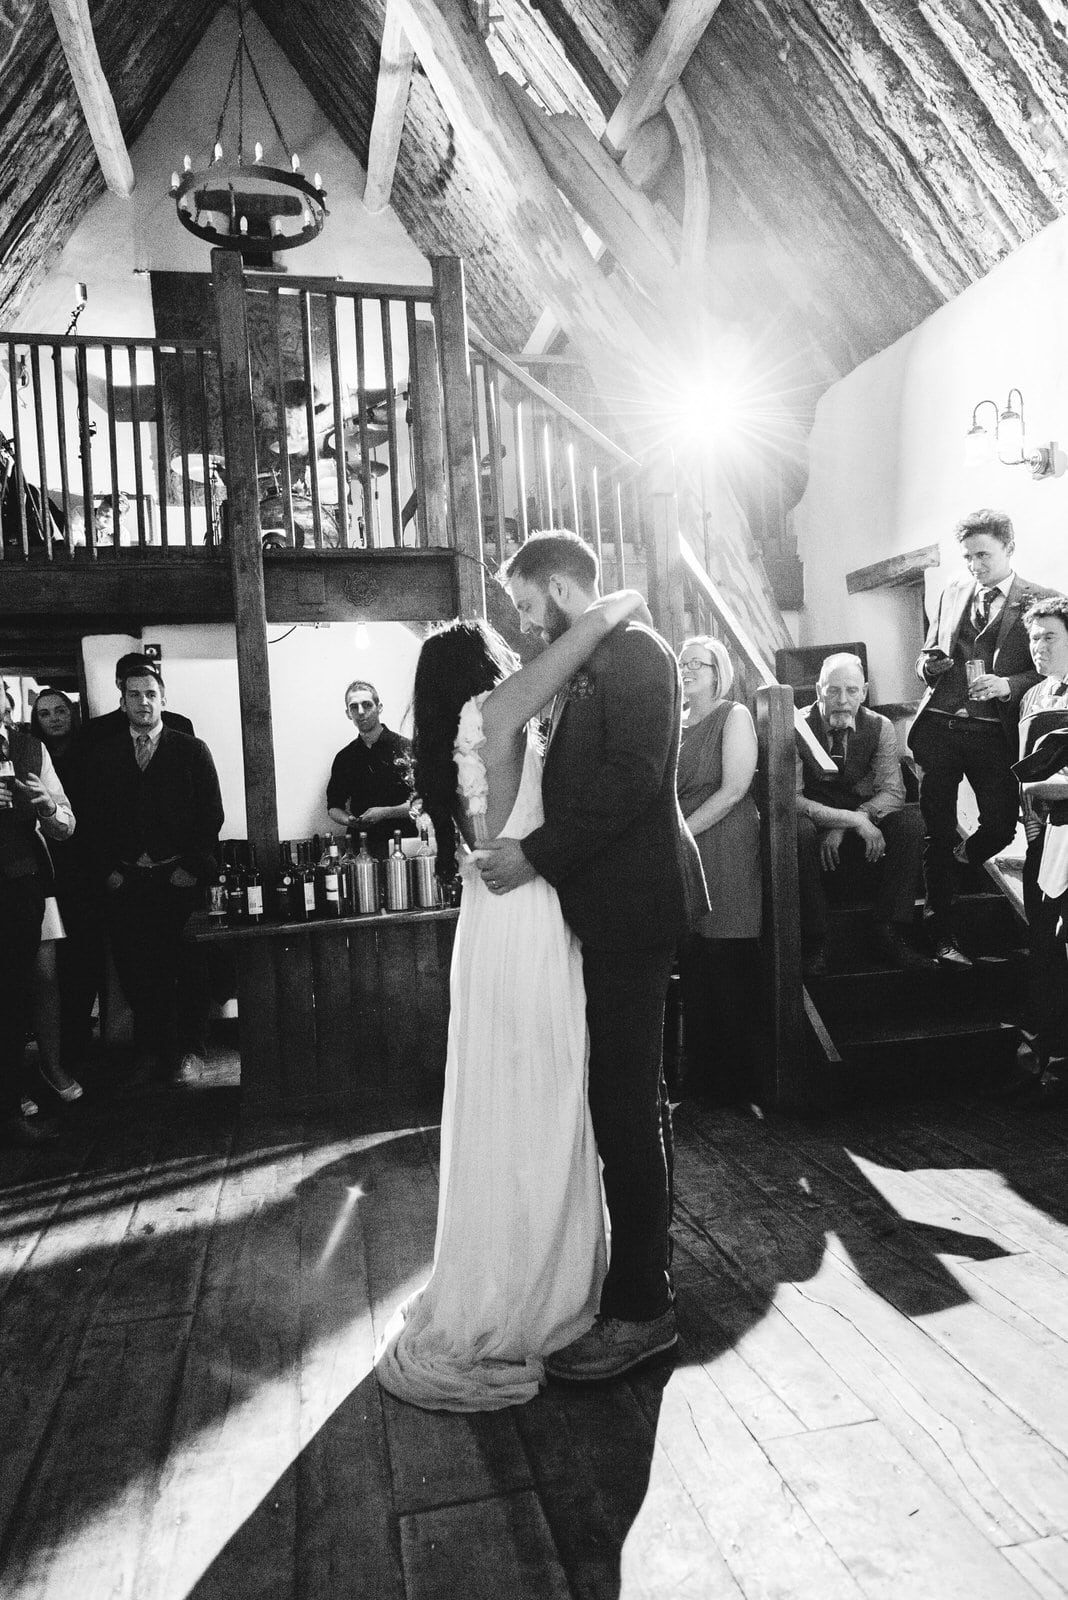 Reportage wedding photography - bride and groom first dance